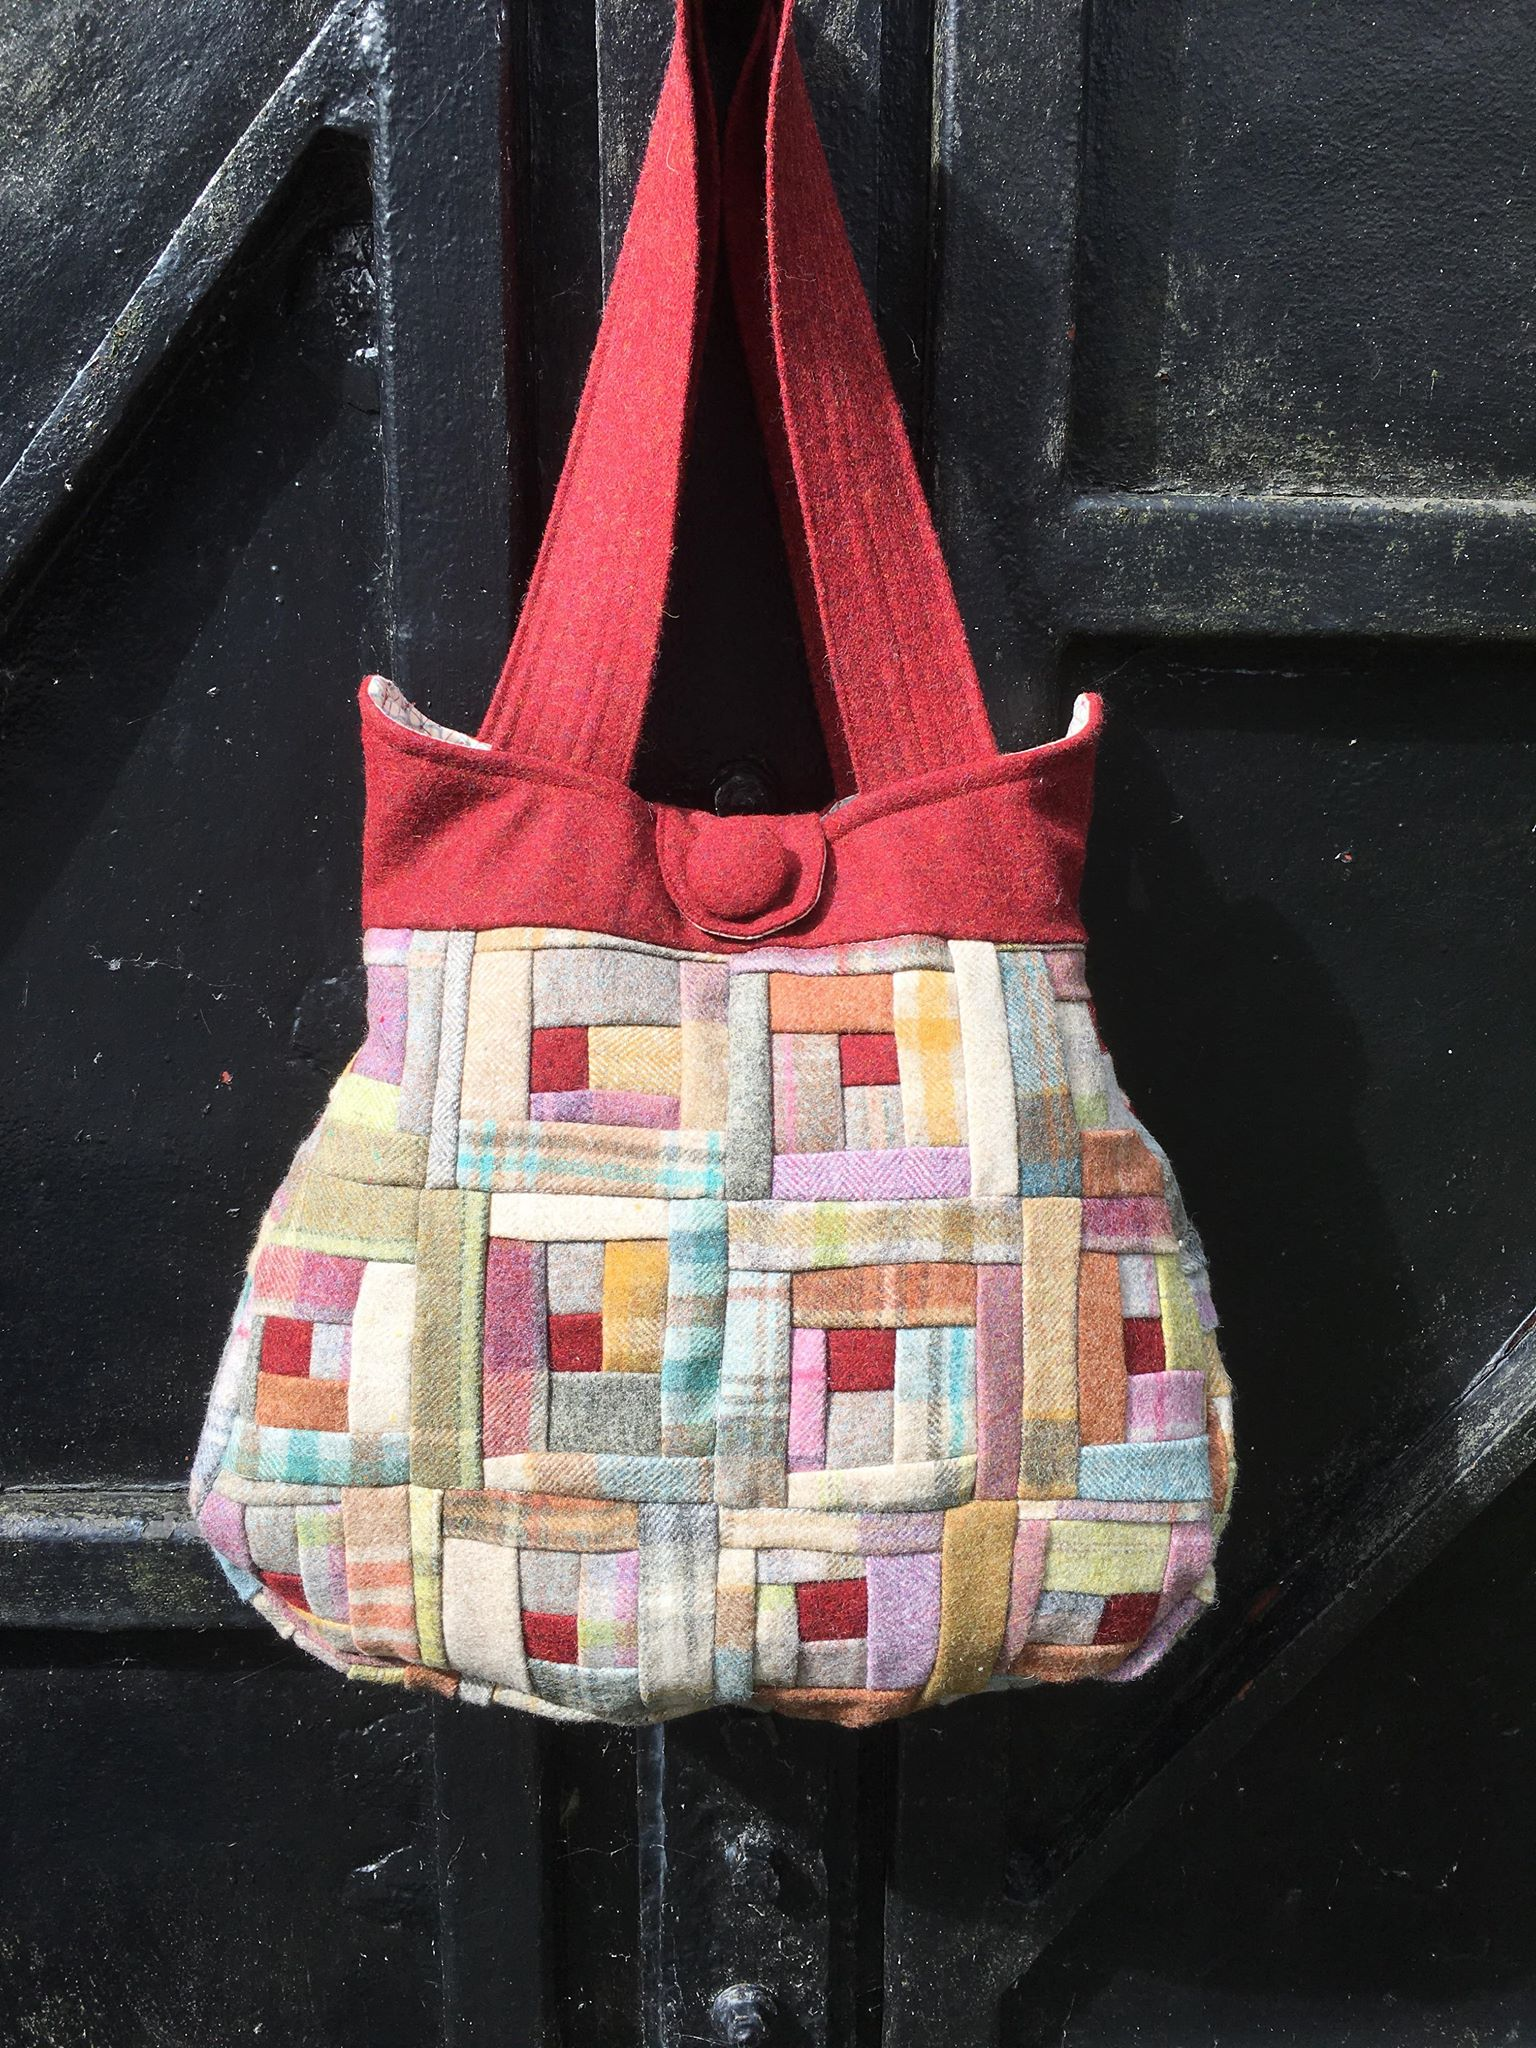 Abbys bag sewing pattern